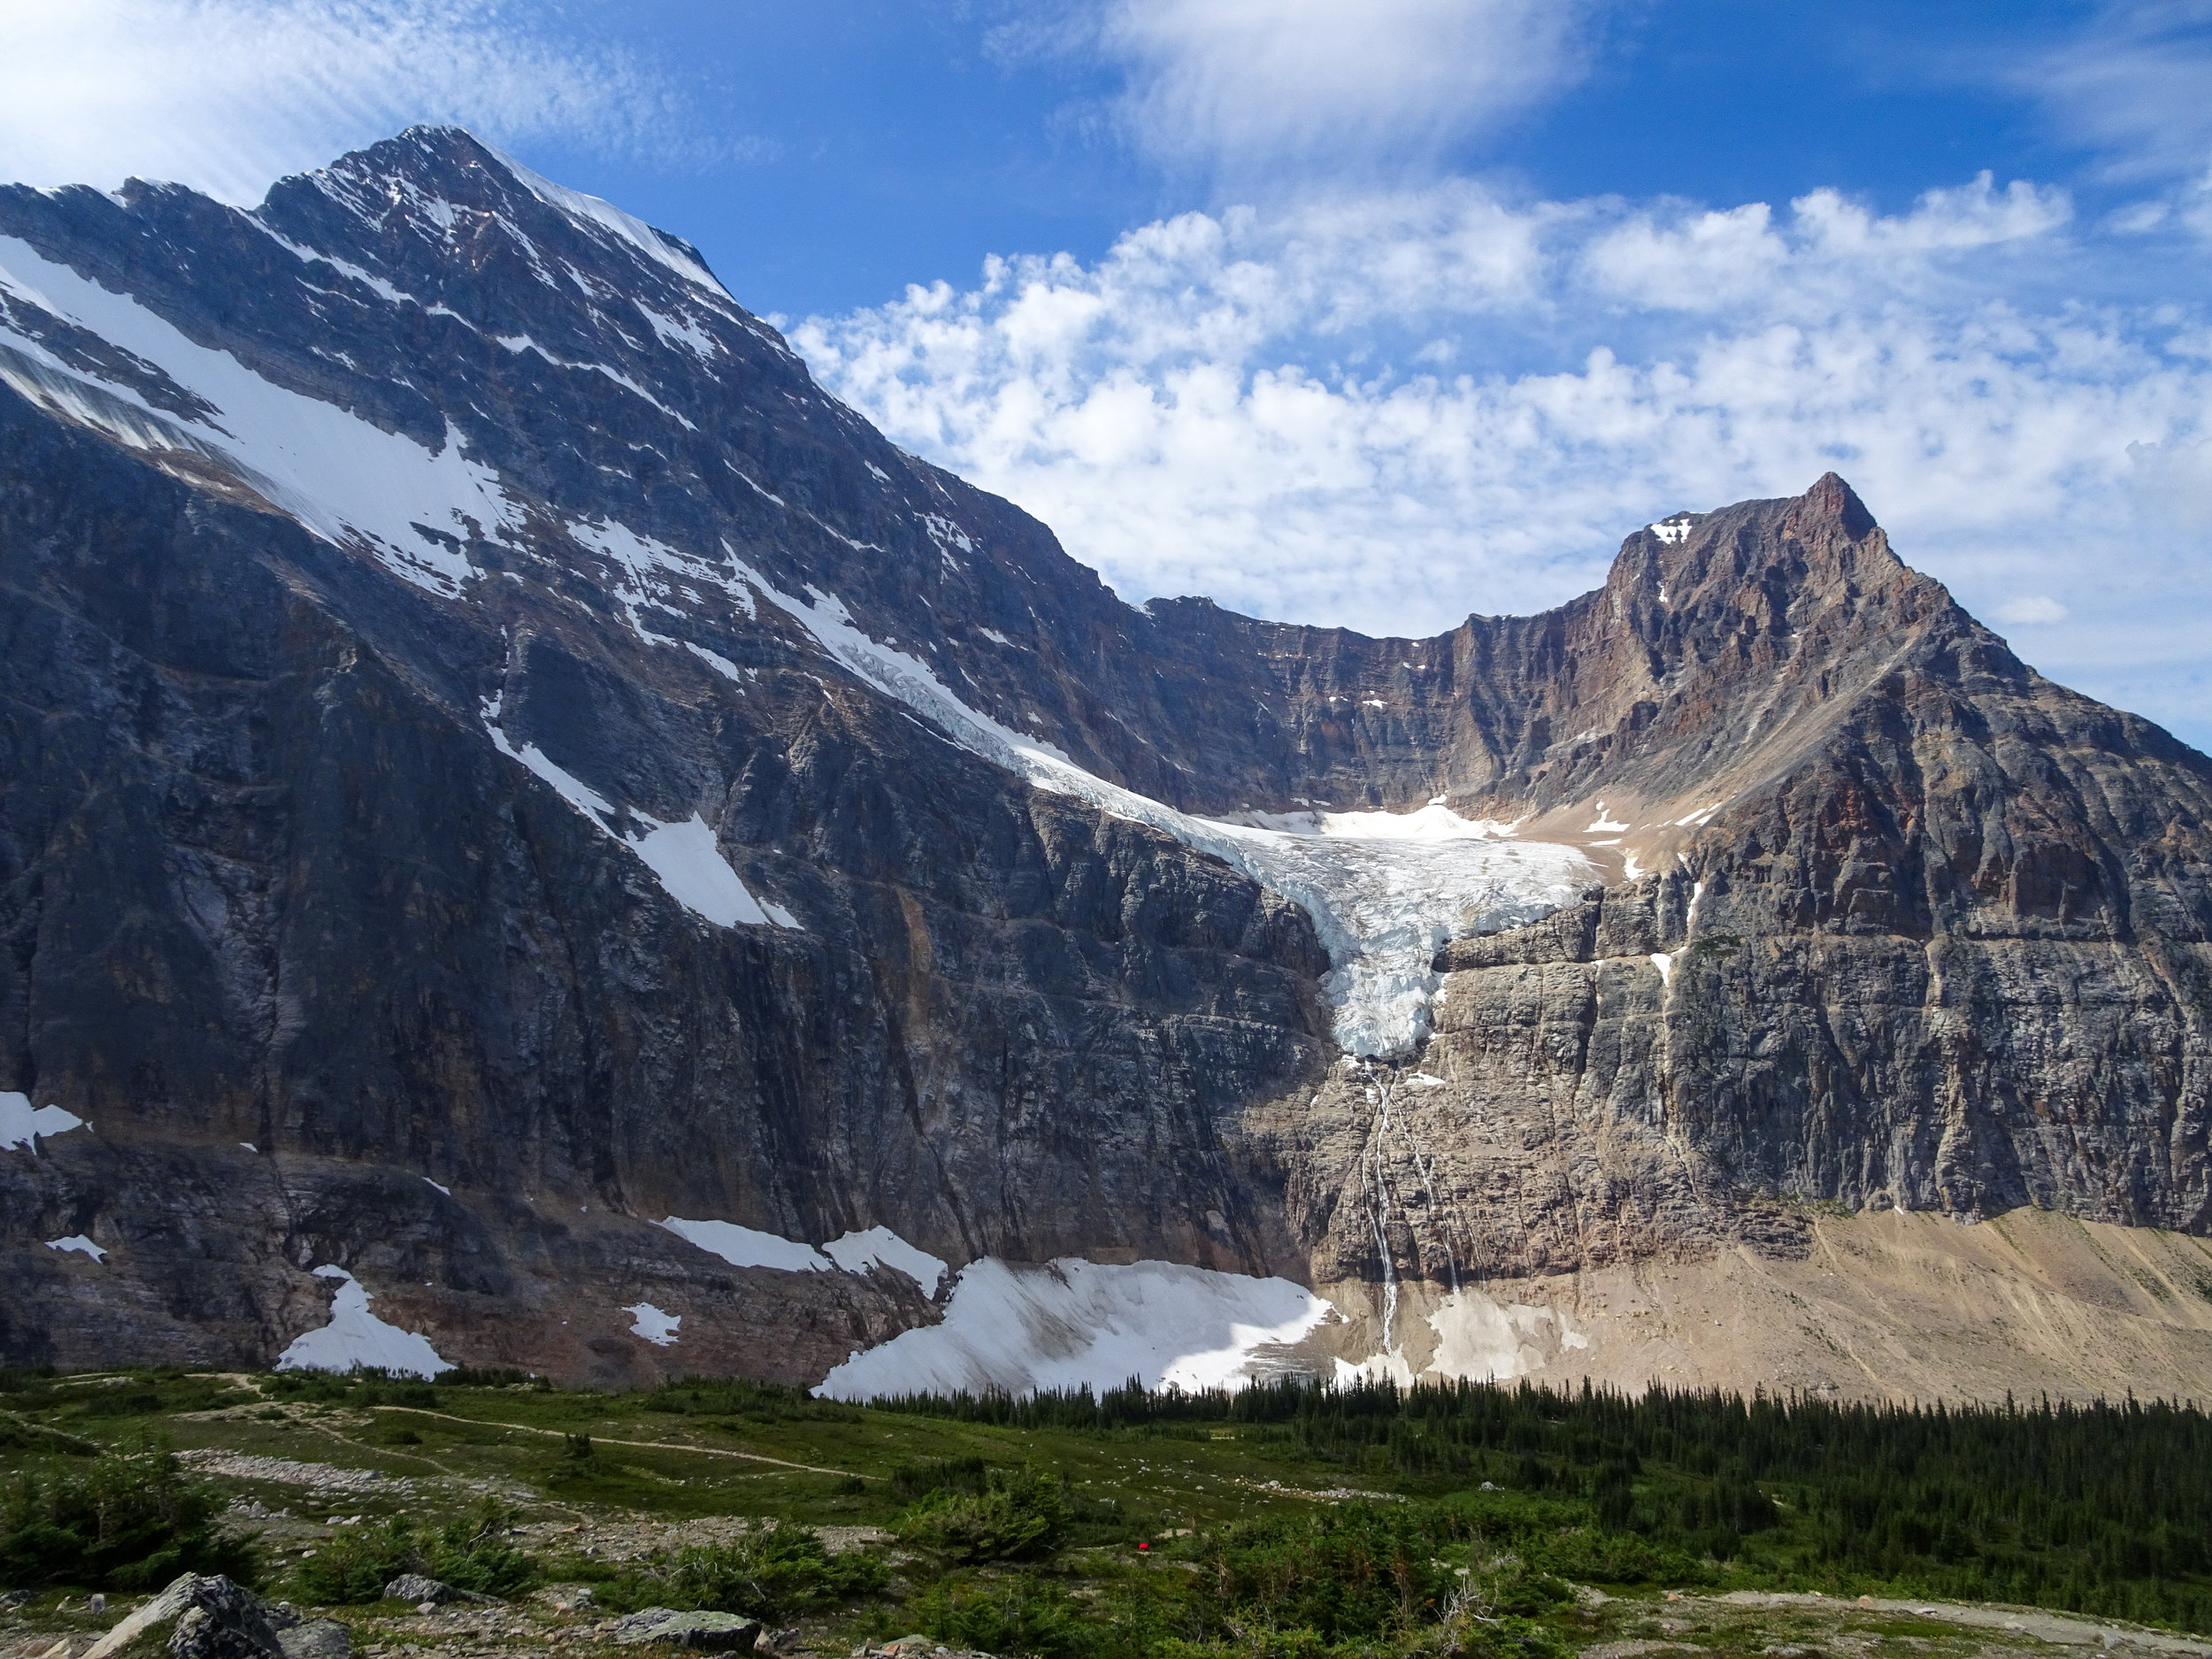 Mount Edith Cavell and Angel Glacier